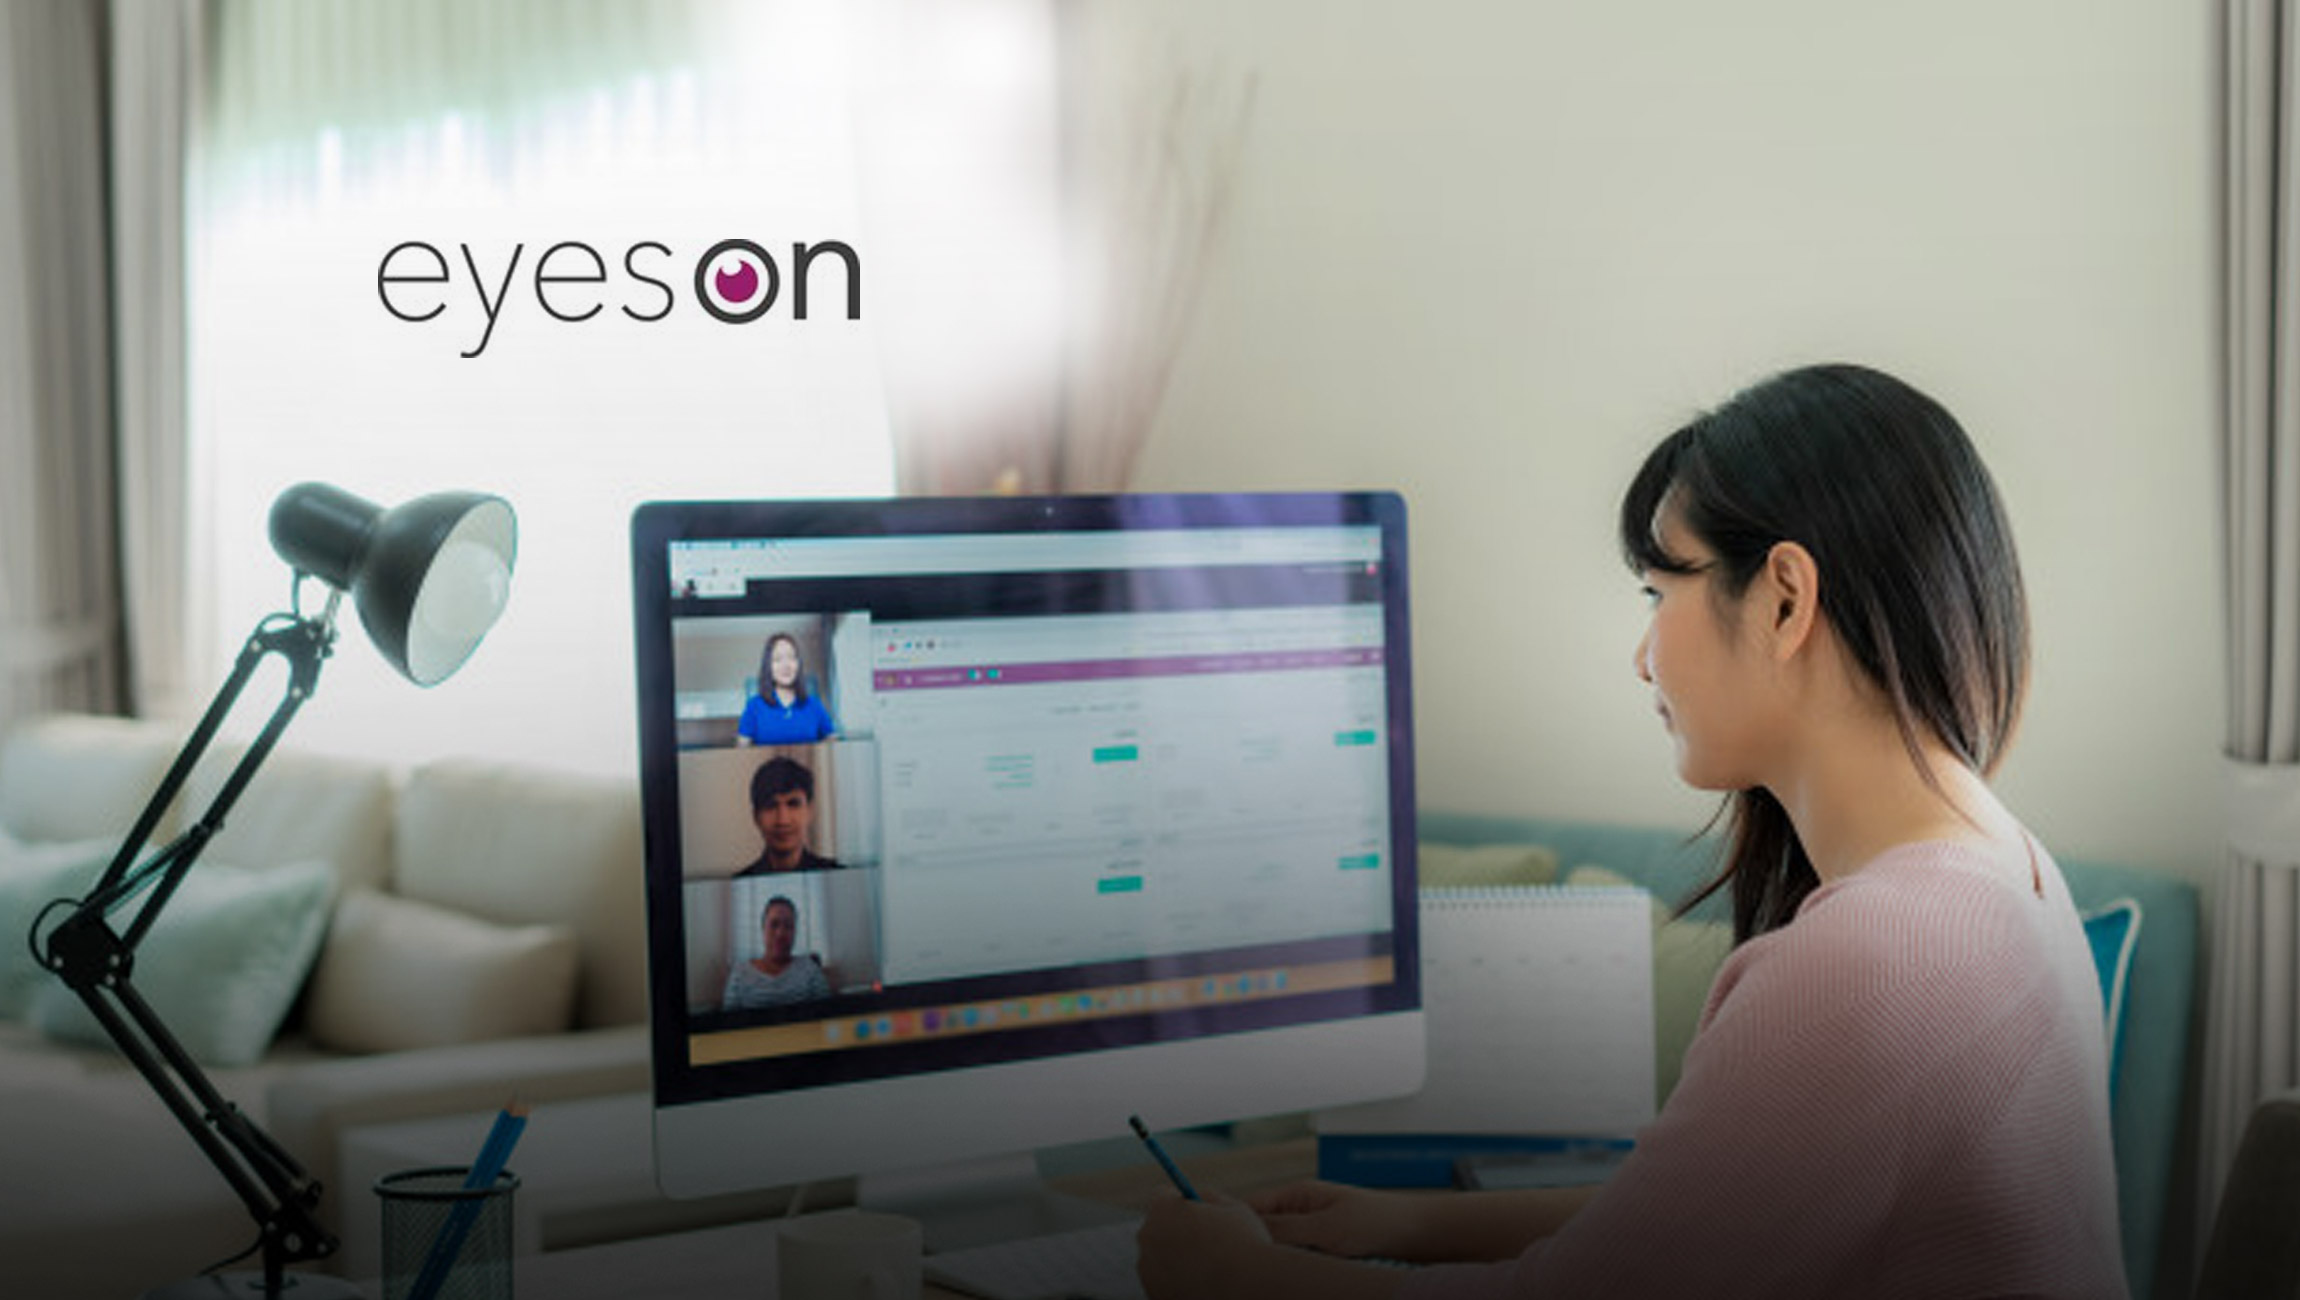 Austrian Video Conferencing Startup Eyeson Is Providing Security by Designing an Important Feature